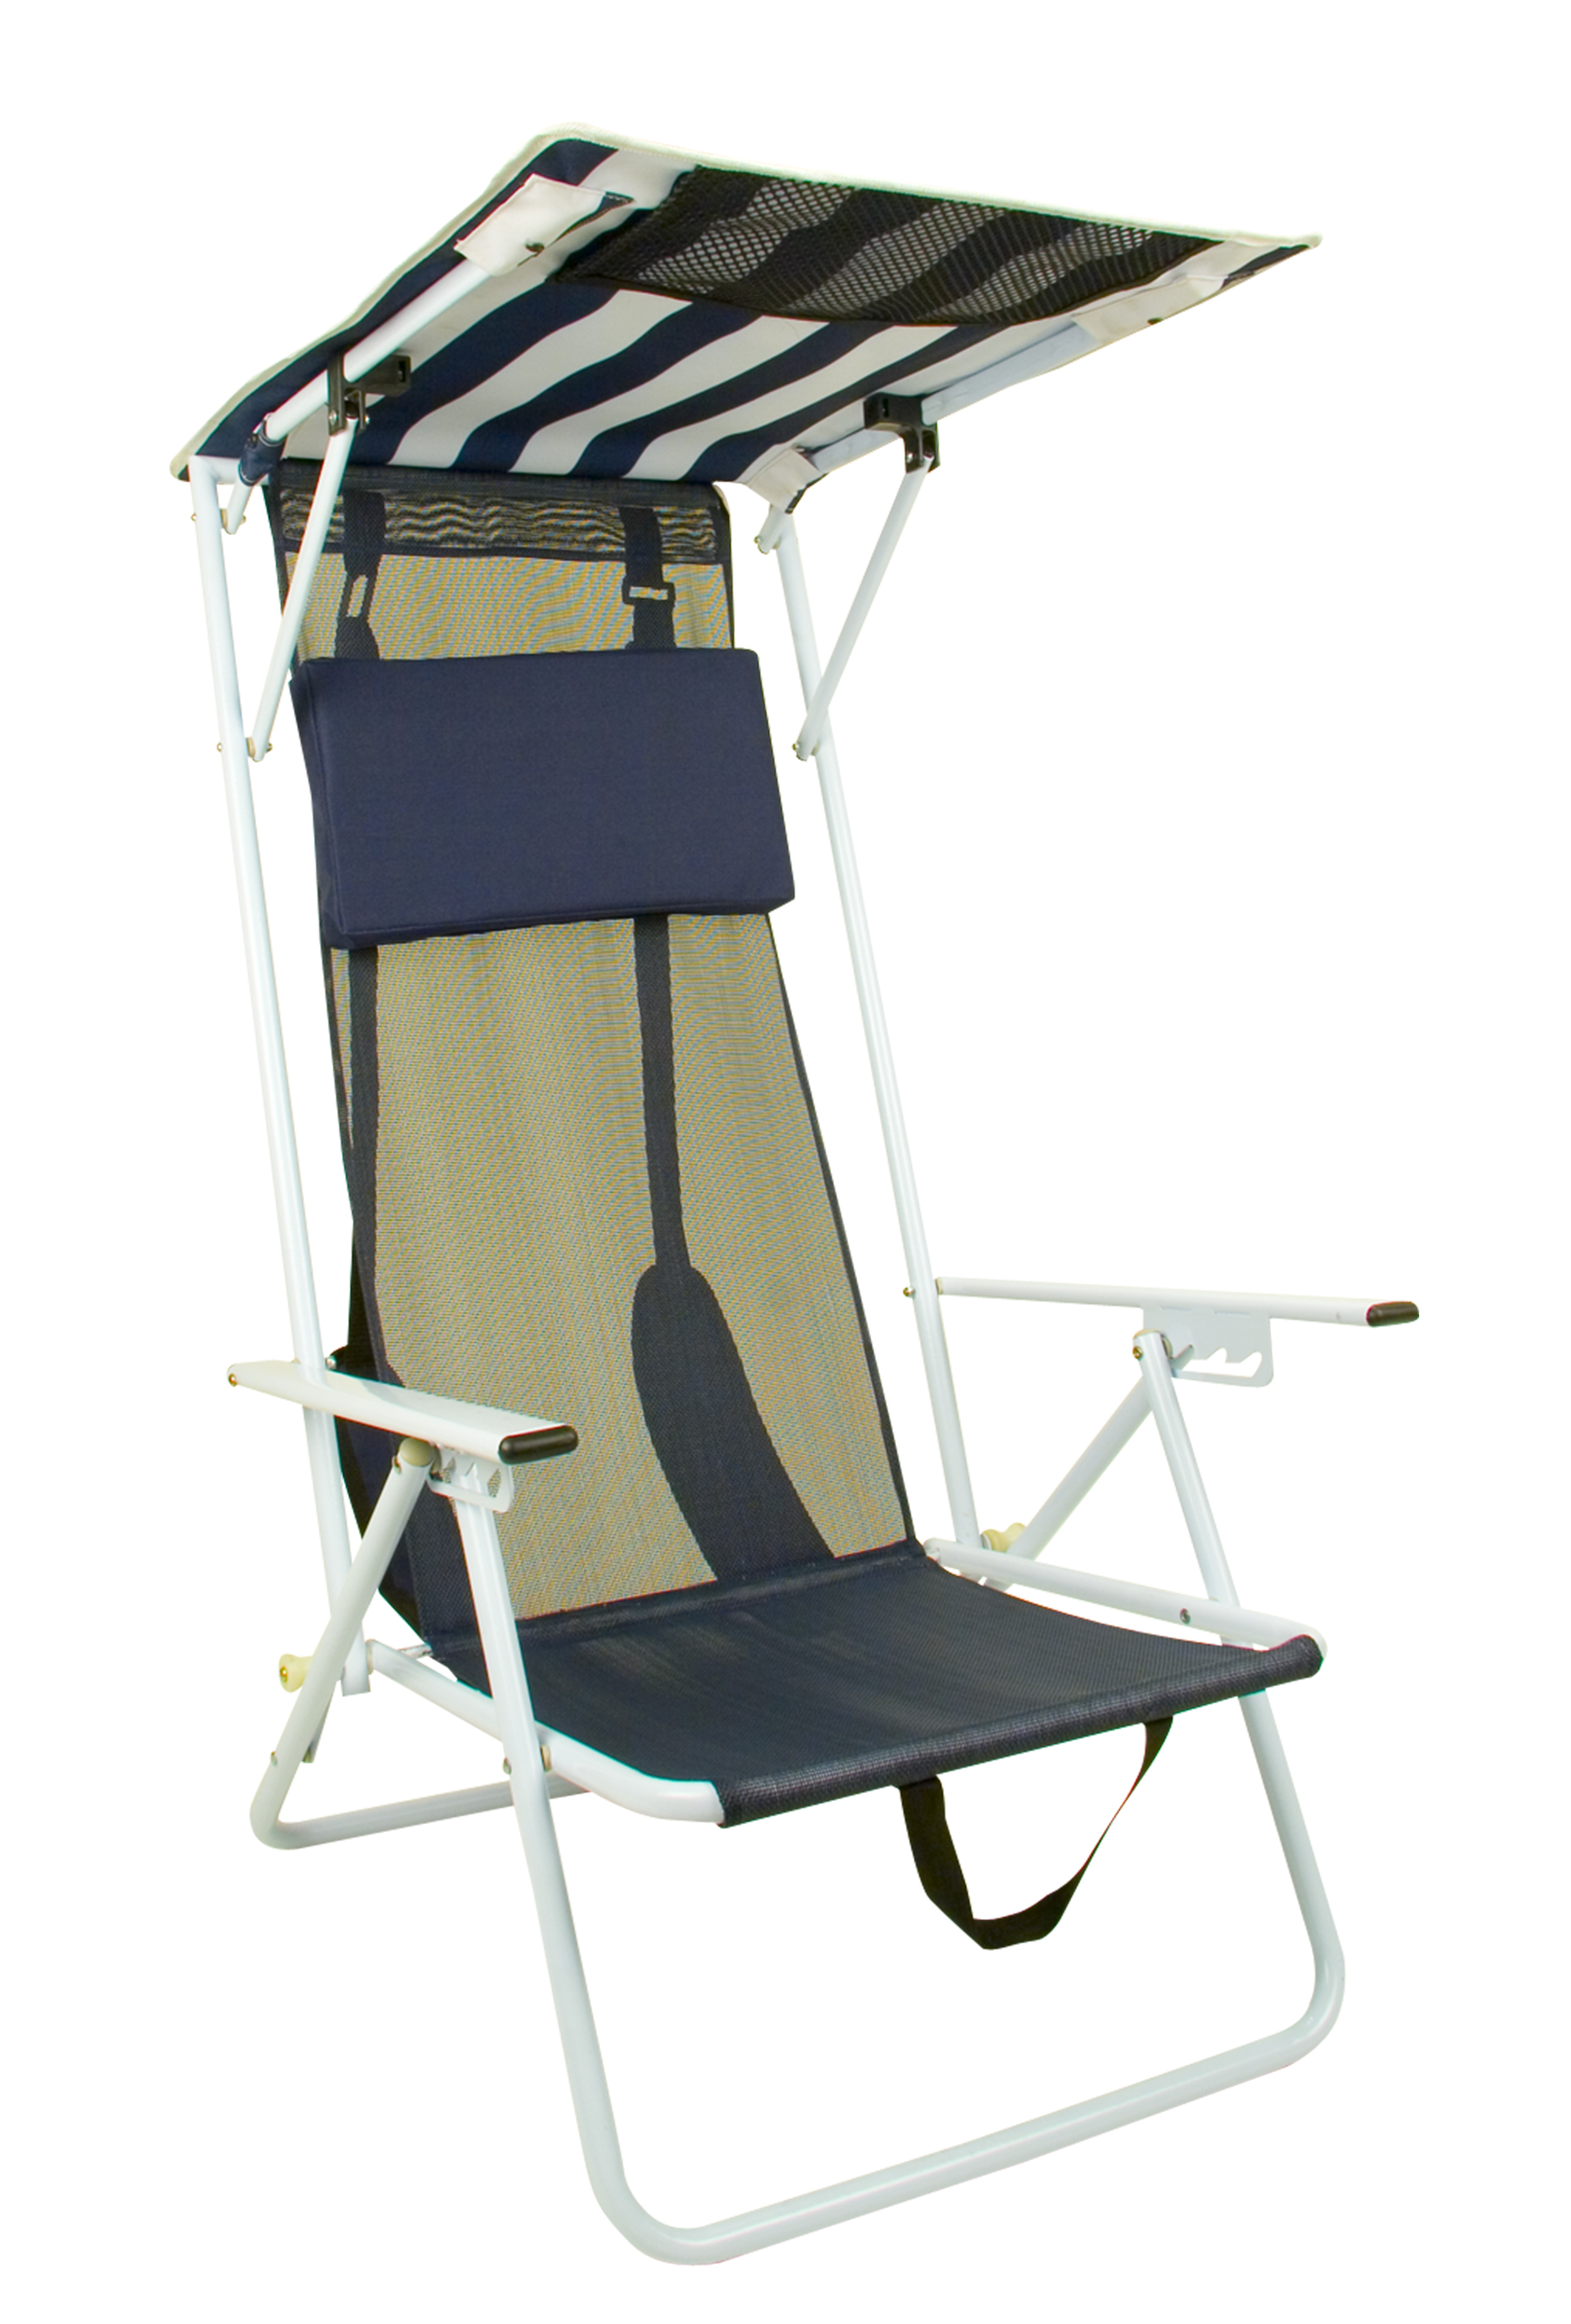 Fold Up Chair With Canopy Quik Shade Folding Beach Chair Striped Navy Blue